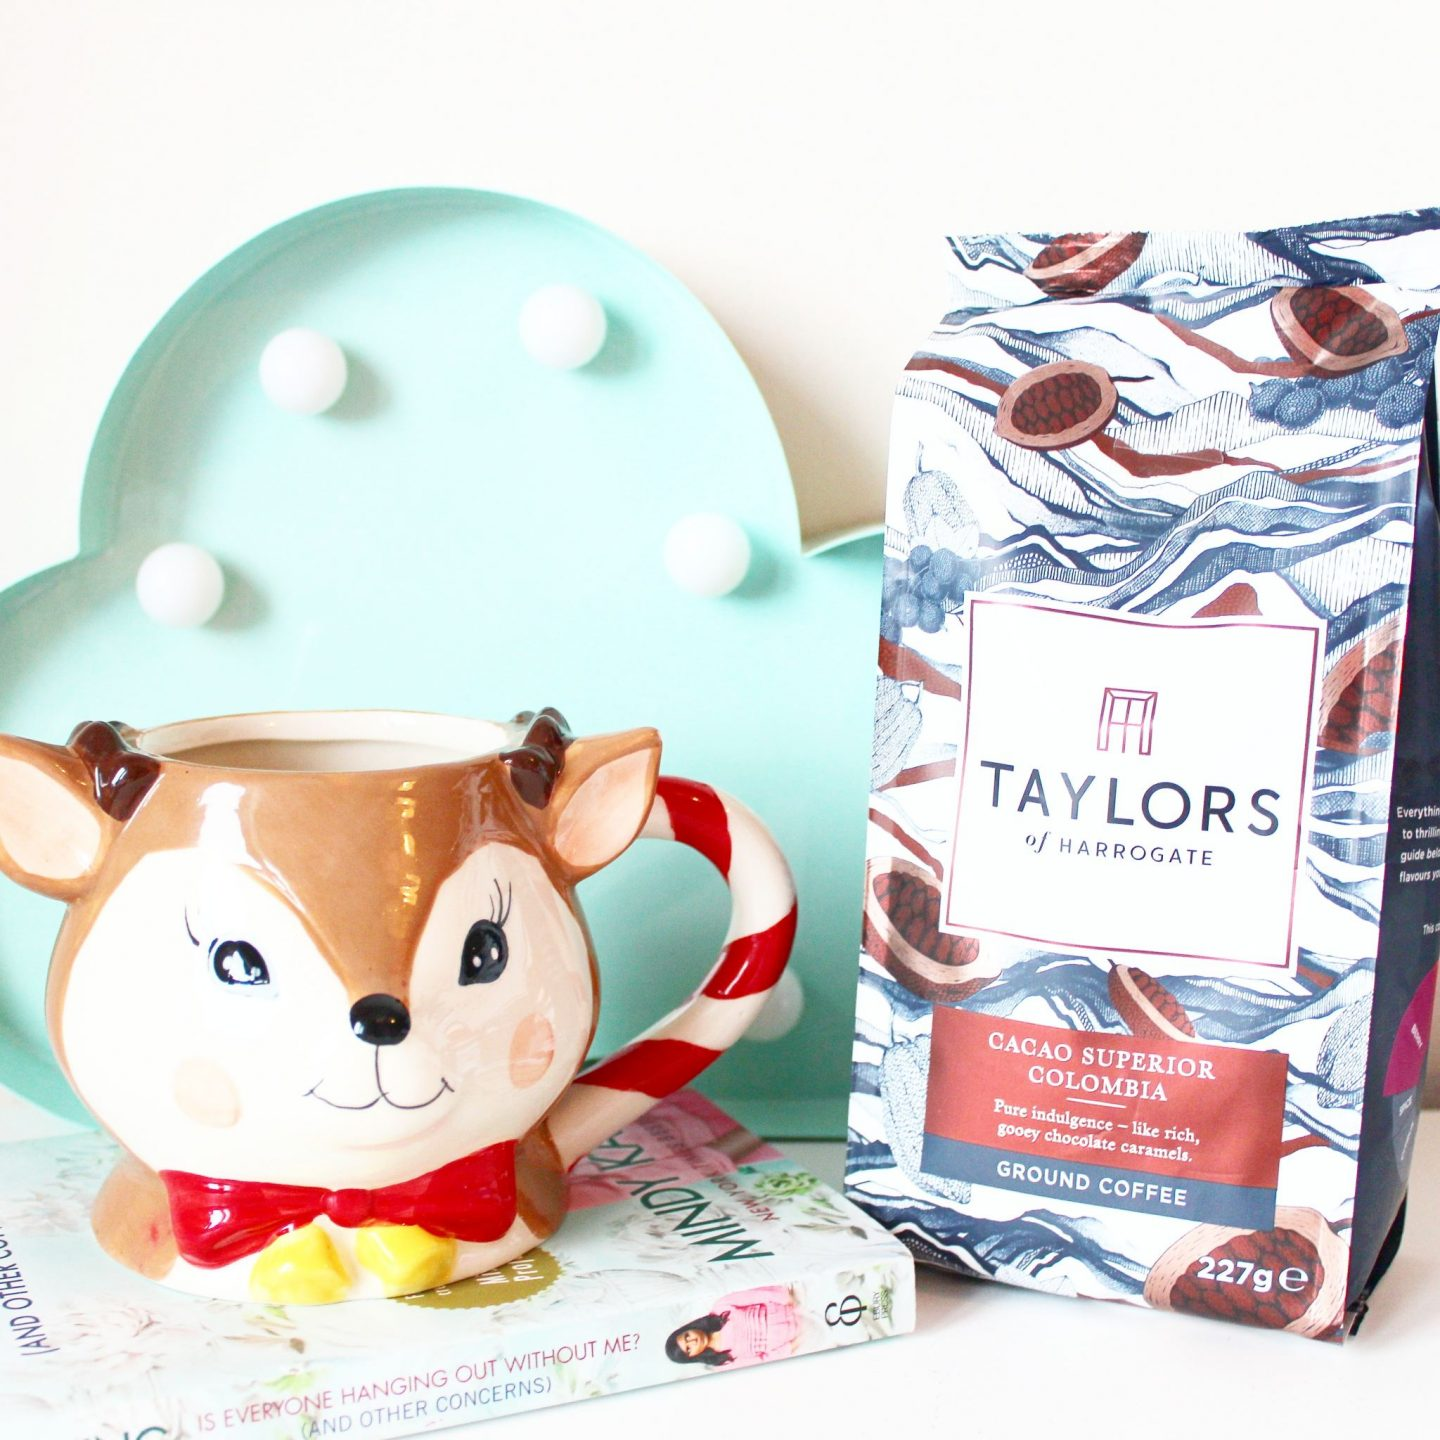 Degustabox | Cacao Superior Colombia Coffee from Taylors of Harrogate